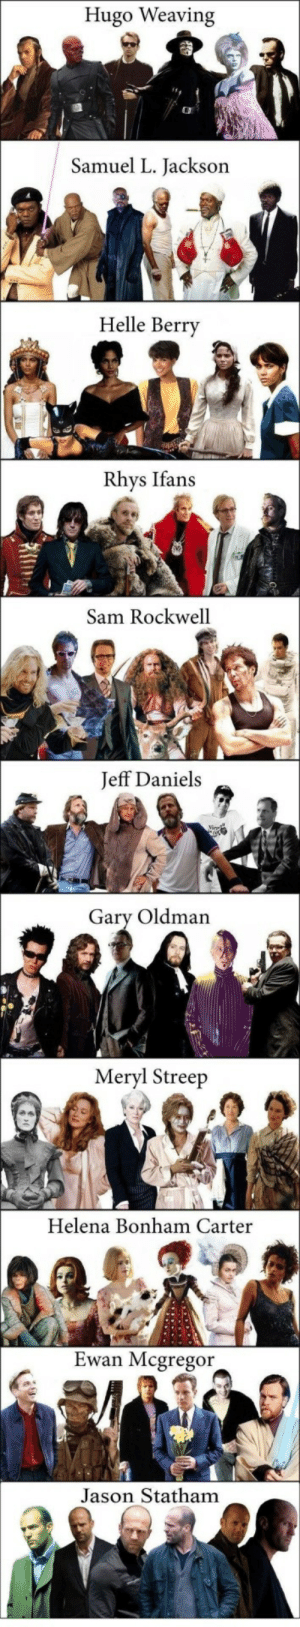 Varying roles of Hollywood Actors: Hugo Weaving  Samuel L. Jackson  Helle Berry  Rhys Ifans  Sam Rockwell  Jeff Daniels  Gary Oldman  Meryl Streep  Helena Bonham Carter  Ewan Mcgregor  Jason Statham Varying roles of Hollywood Actors